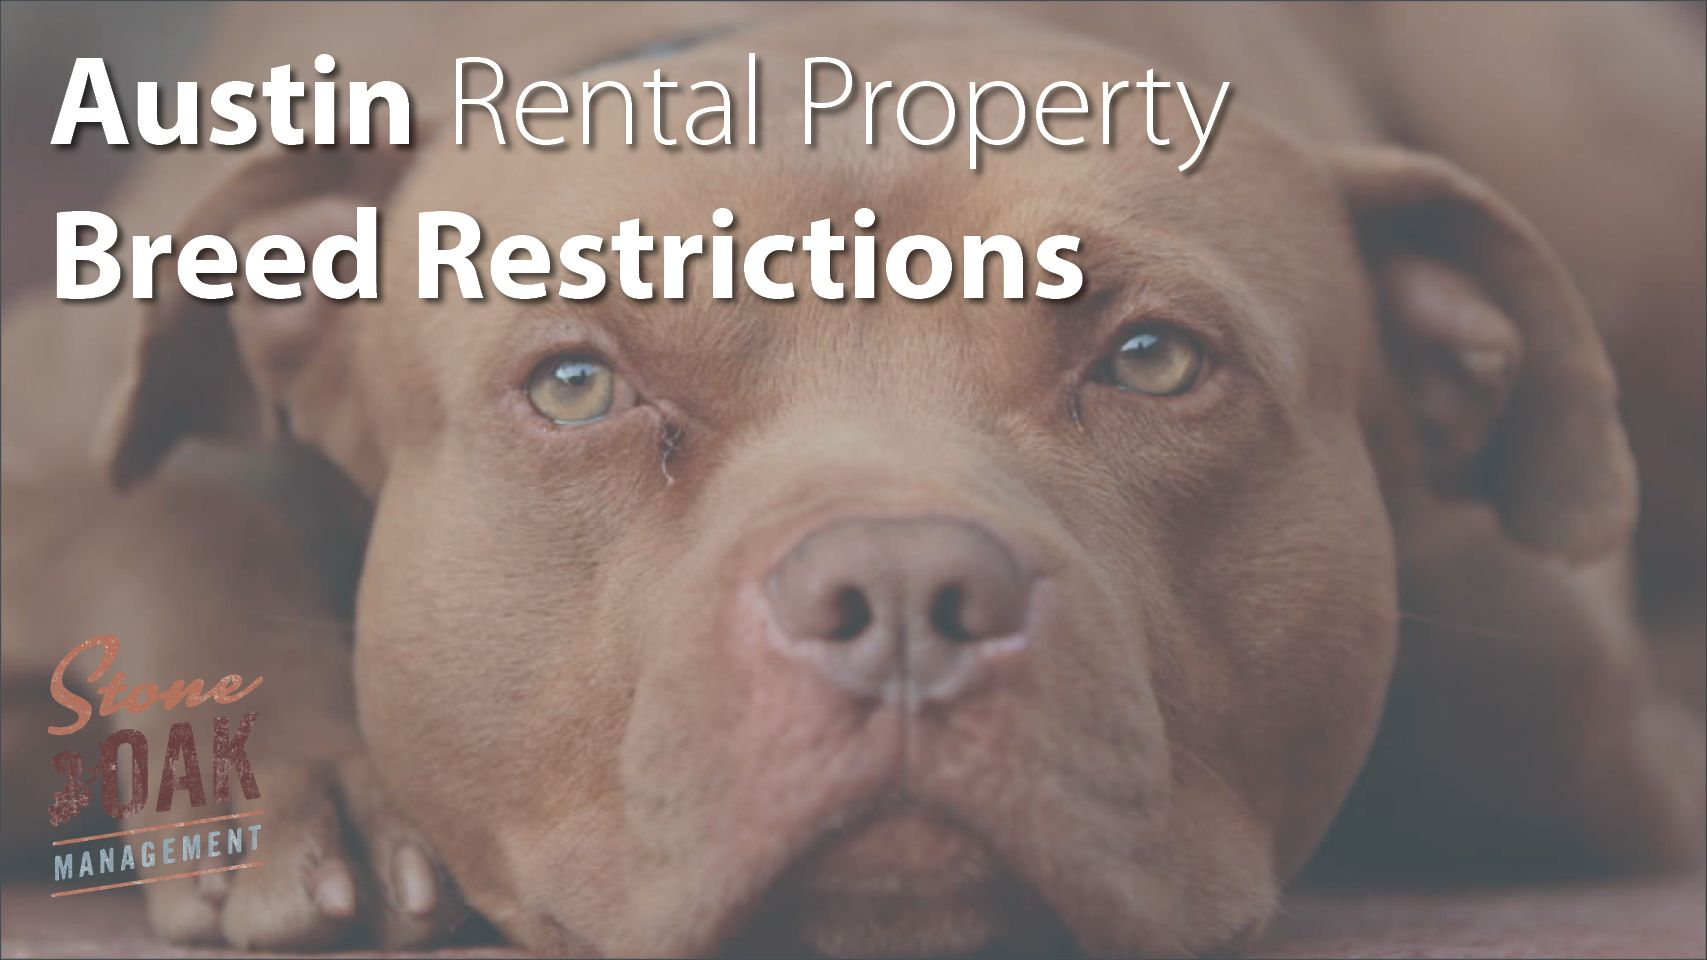 Breed Restrictions for Austin Rental Properties